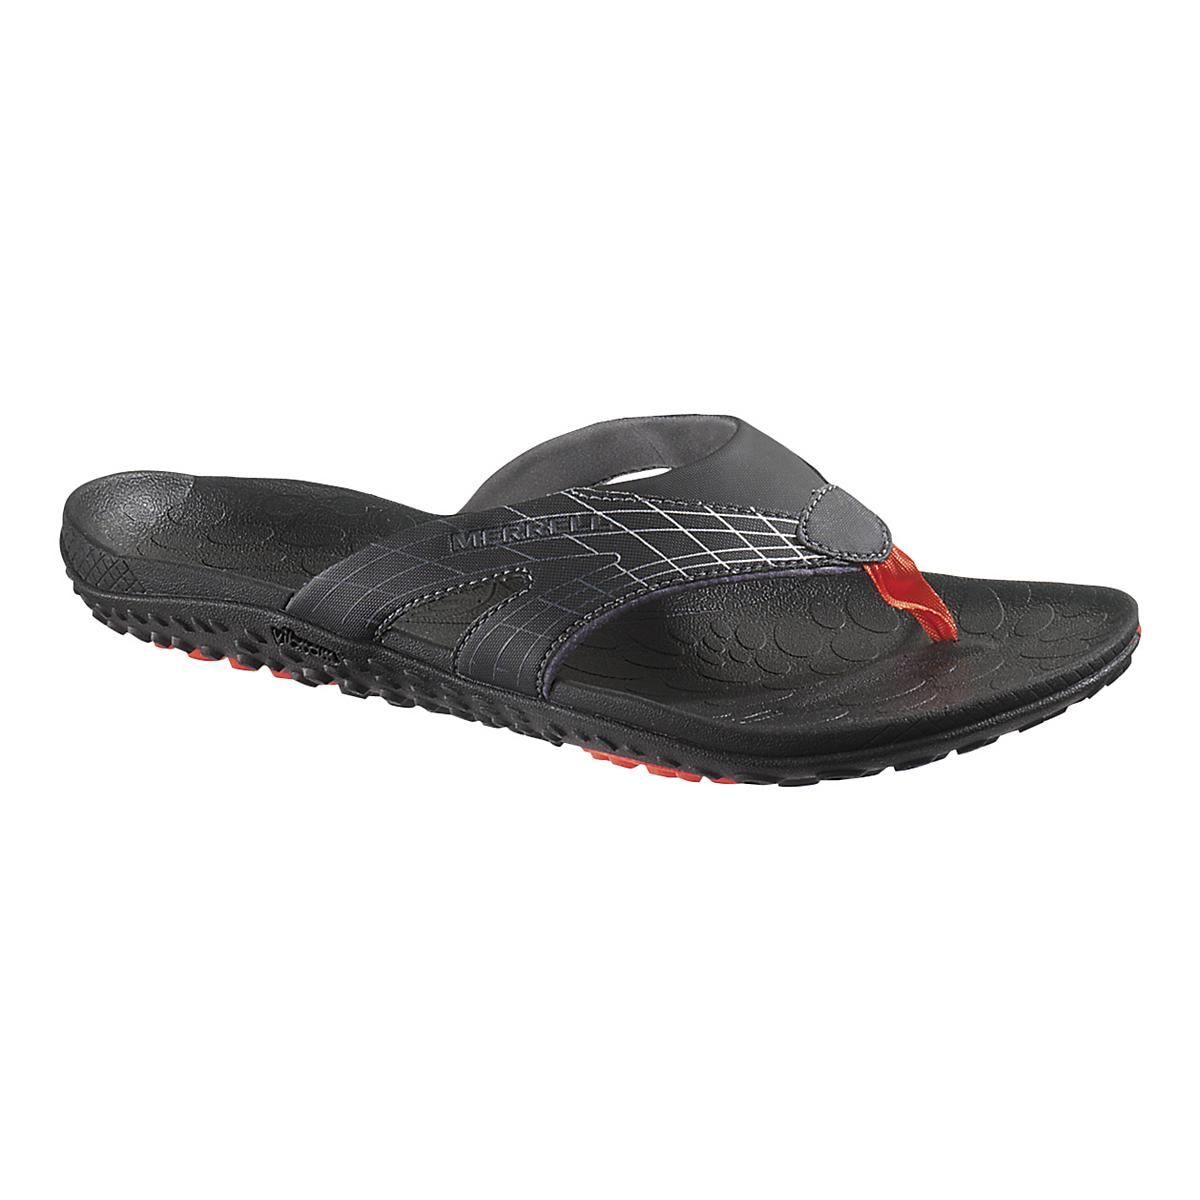 3b8baa87939 Mens Merrell Paciki Wrap Sandals Shoe at Road Runner Sports